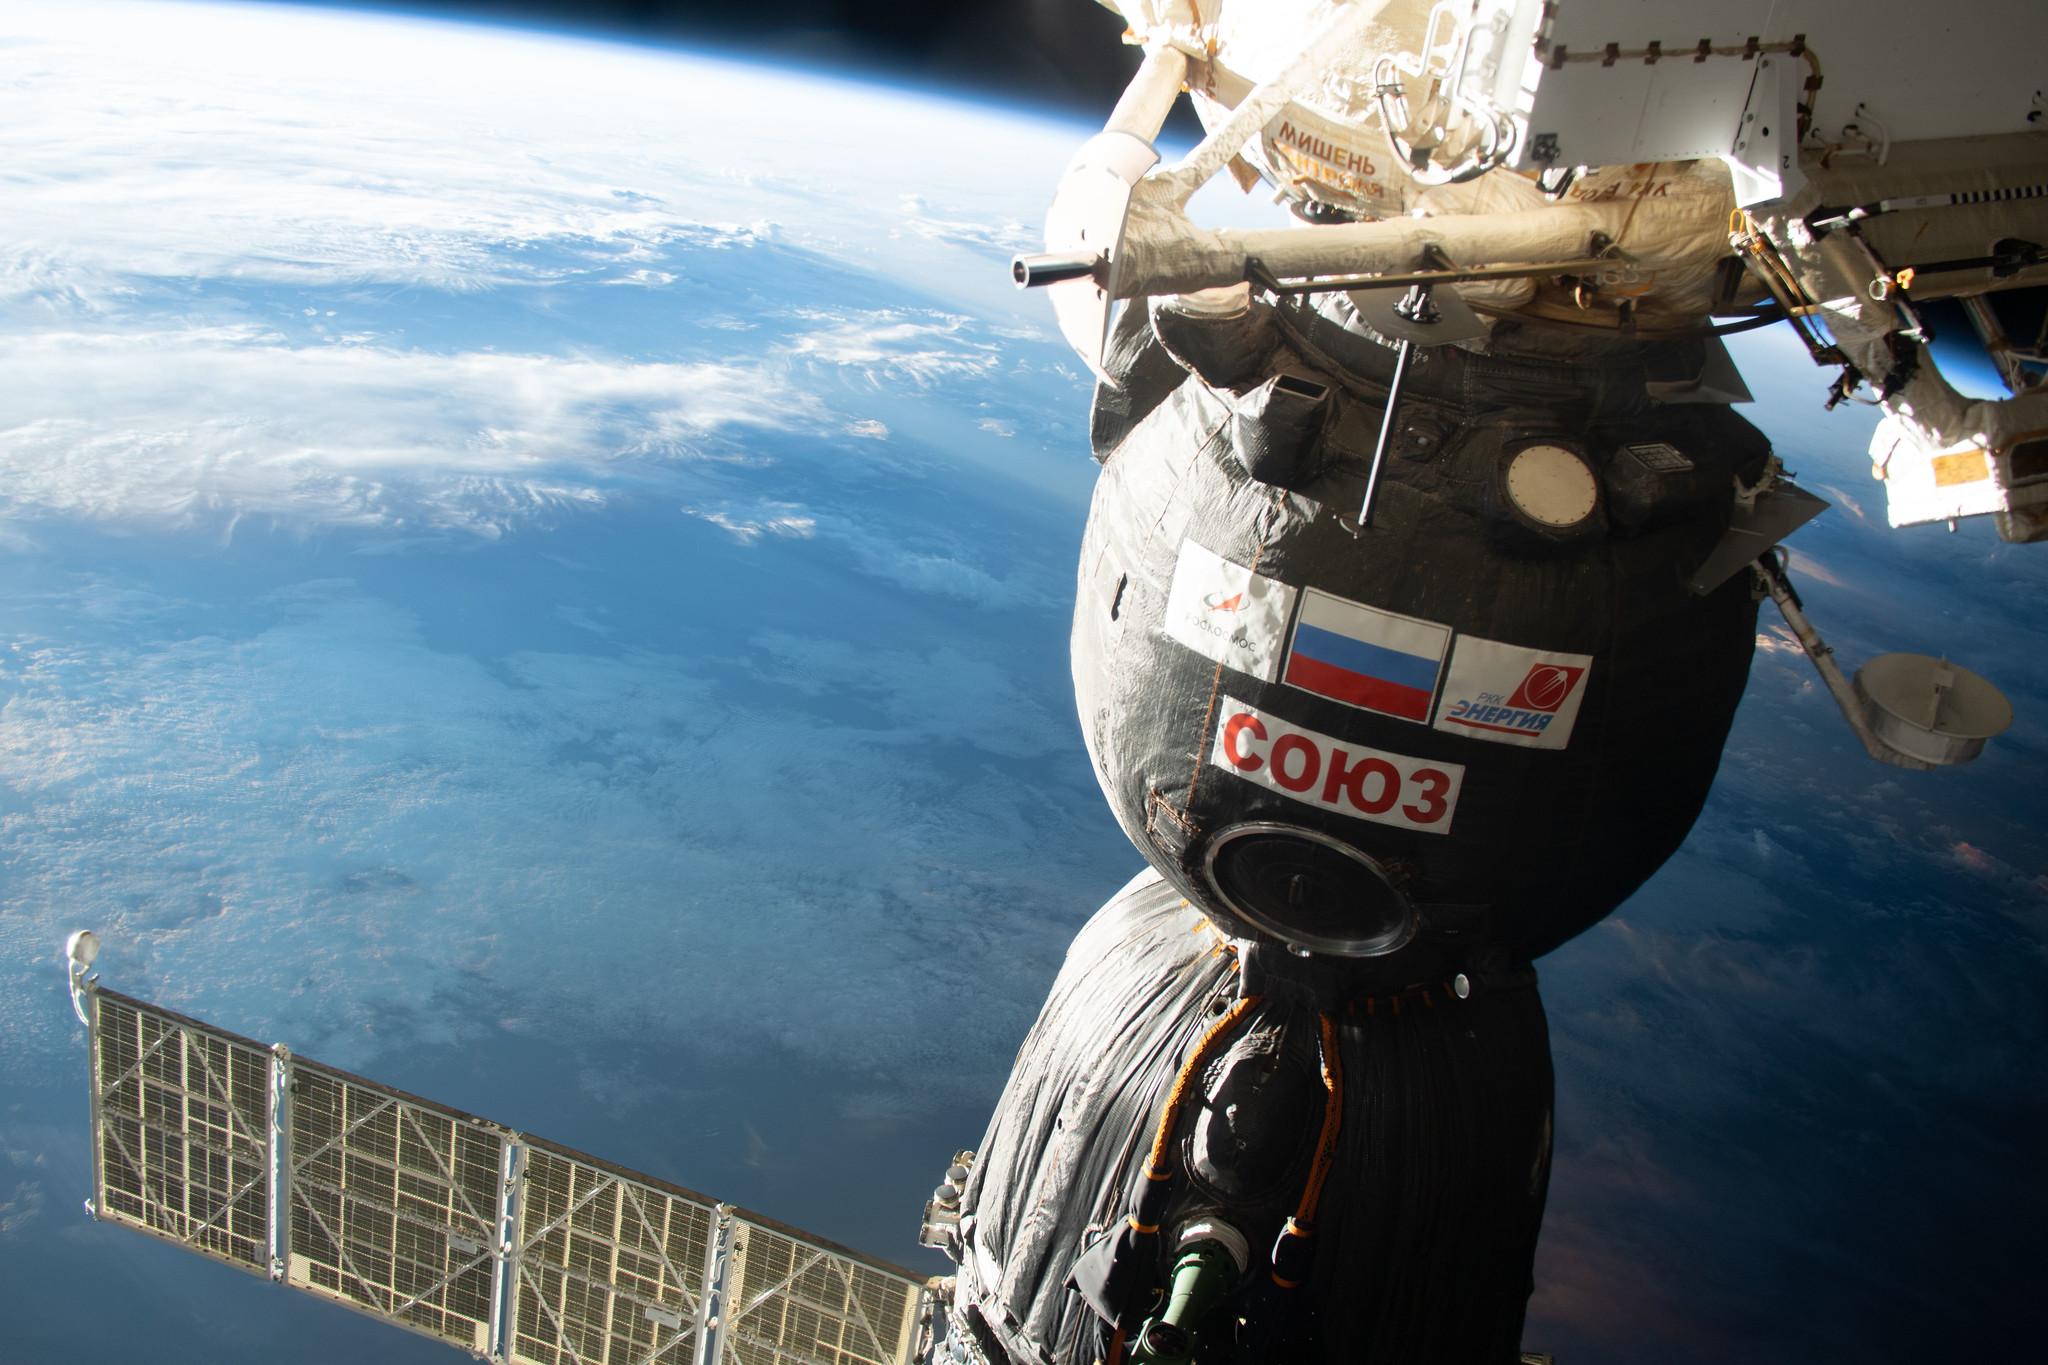 Space Station Crew to Relocate Soyuz to Make Room for New Crewmates - NASA